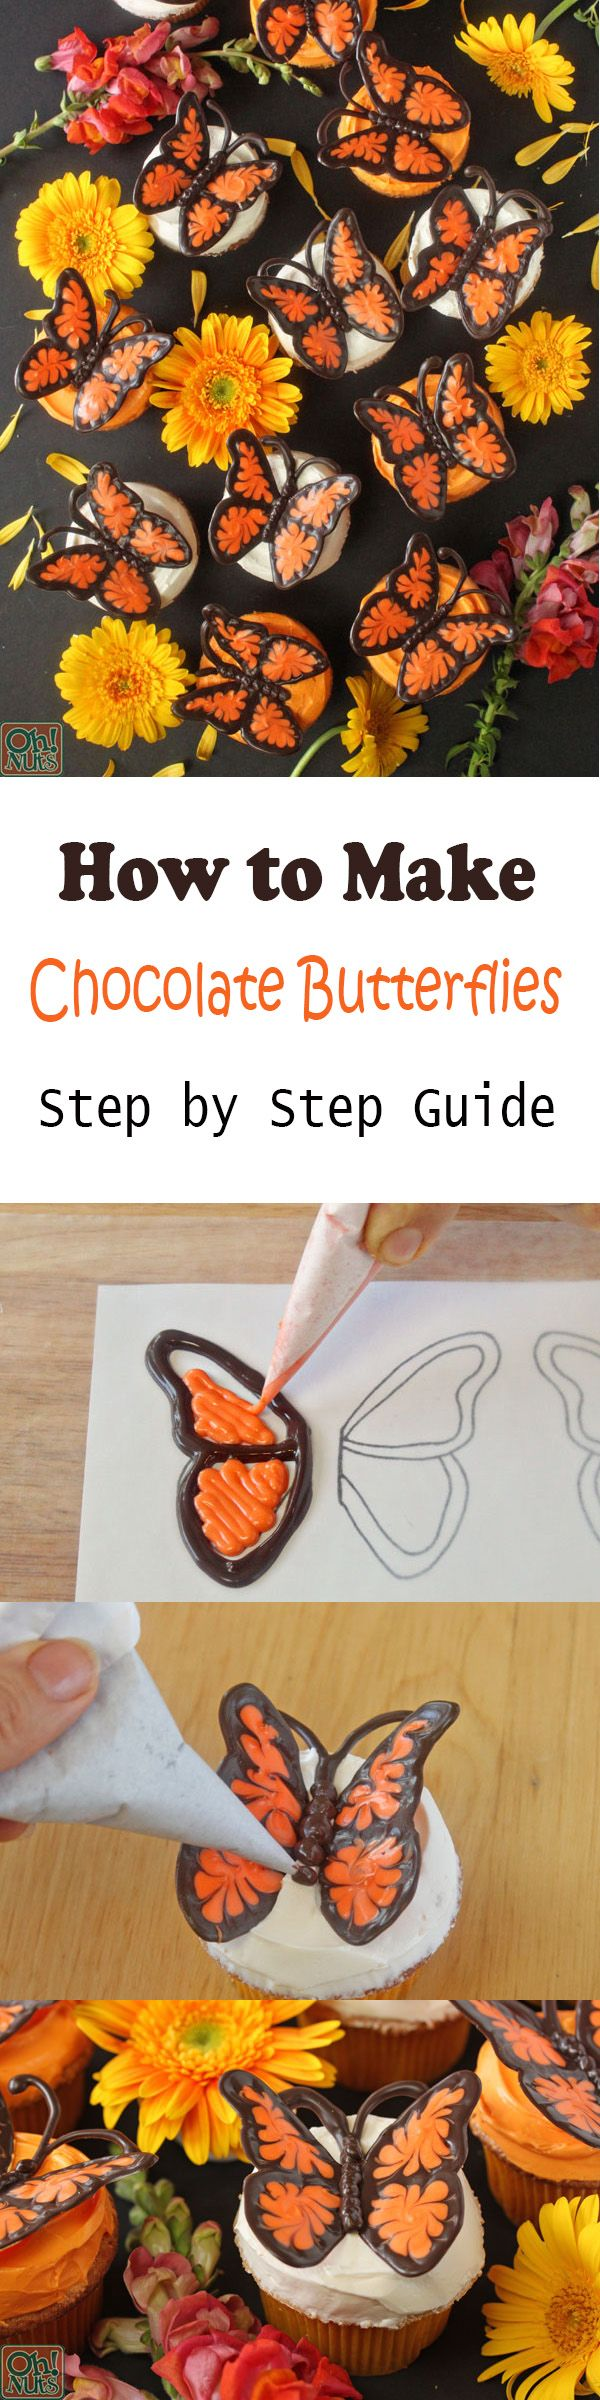 how to make chocolate butterfly wings